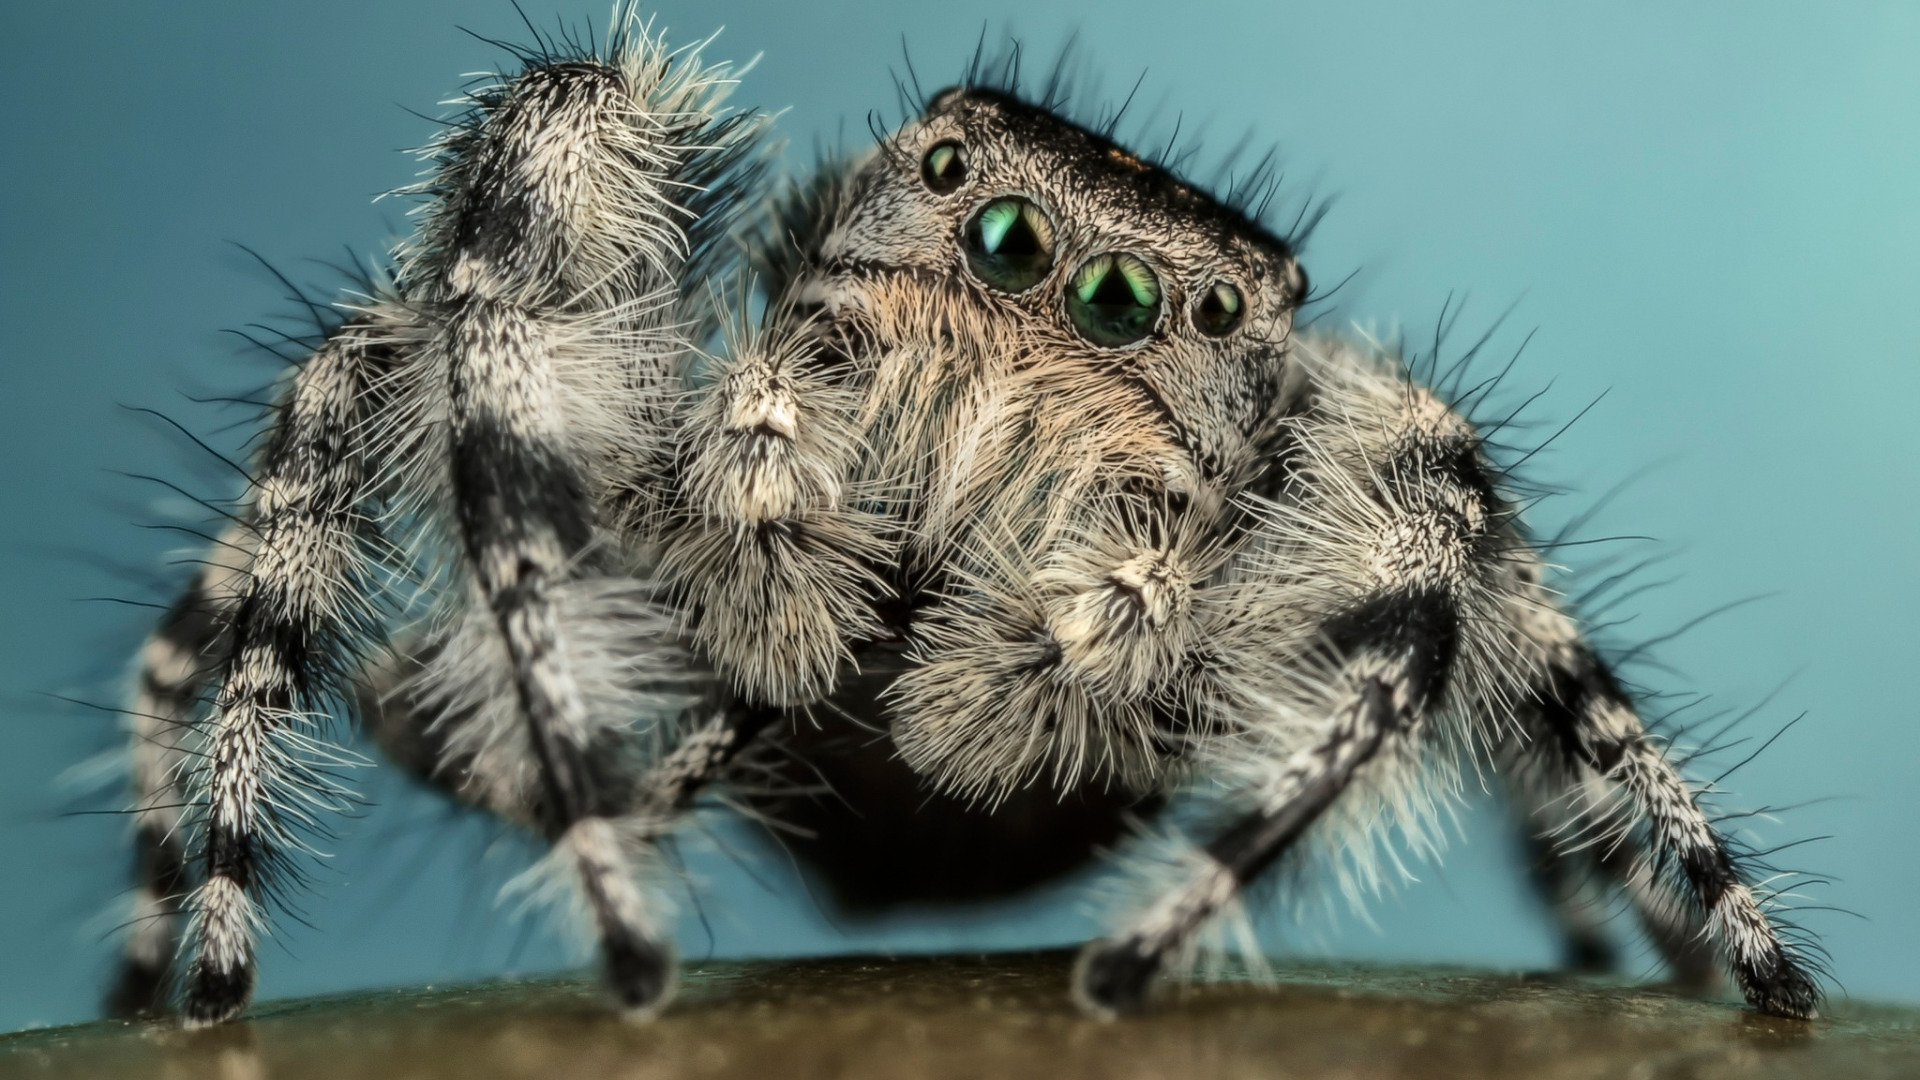 Big hairy spider black and white stock photos images